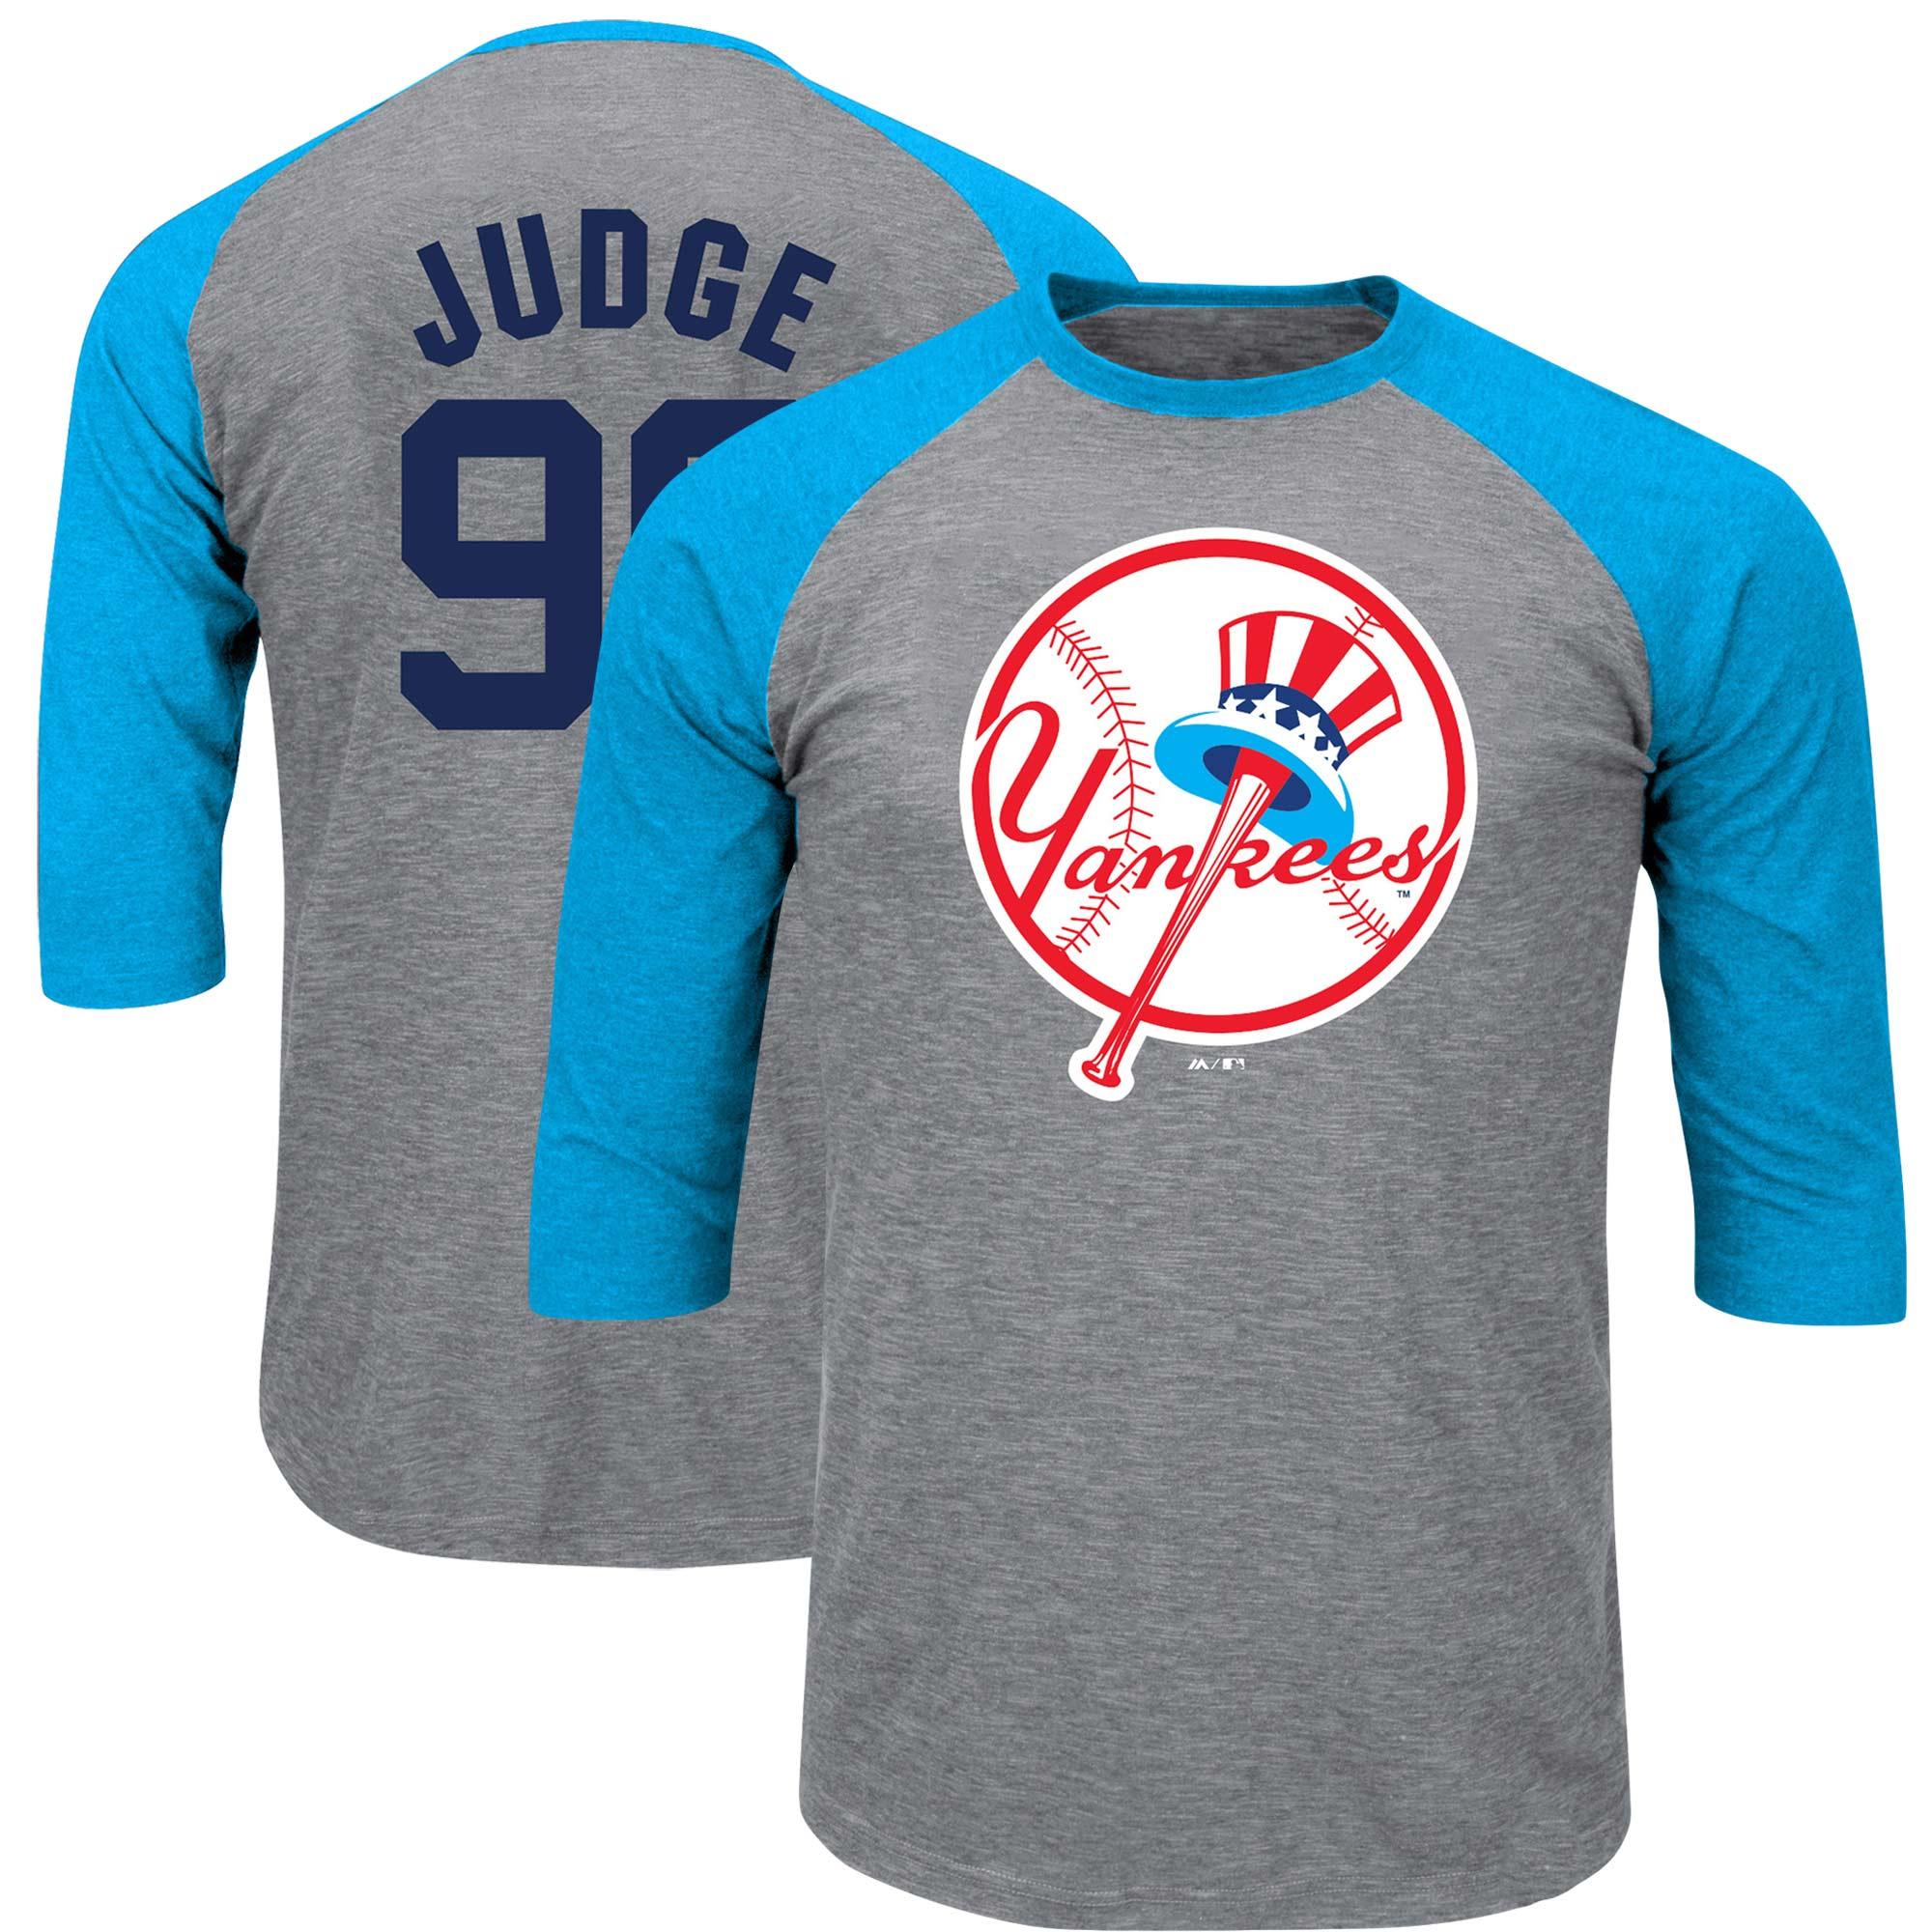 Aaron Judge New York Yankees Majestic Big & Tall Player Raglan 3/4-Sleeve T-Shirt - Heathered Gray/Light Blue